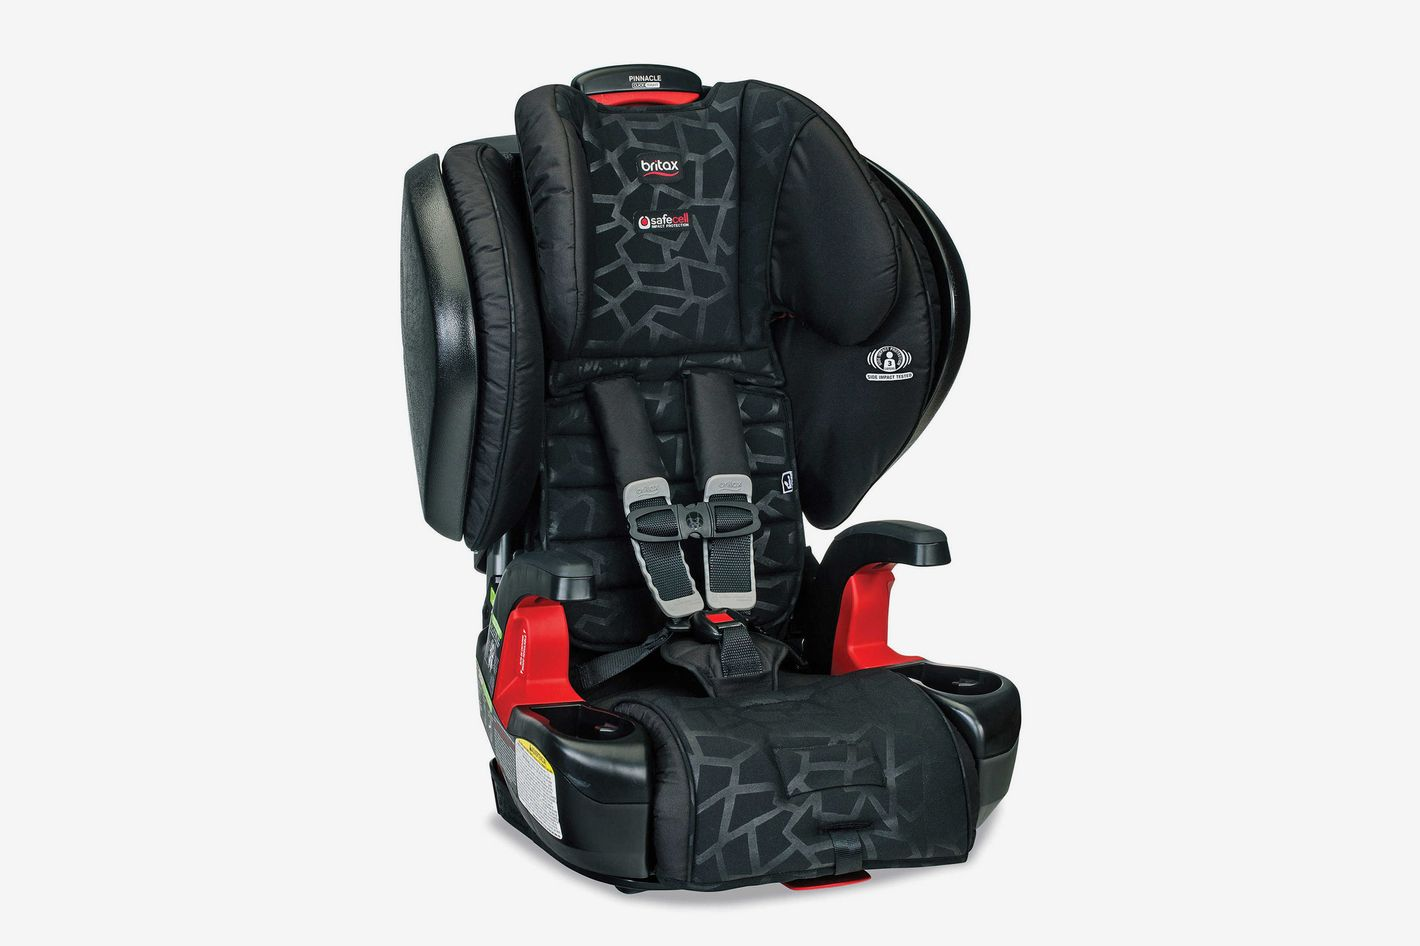 Britax Pinnacle Clicktight Harness 2 Booster Seat